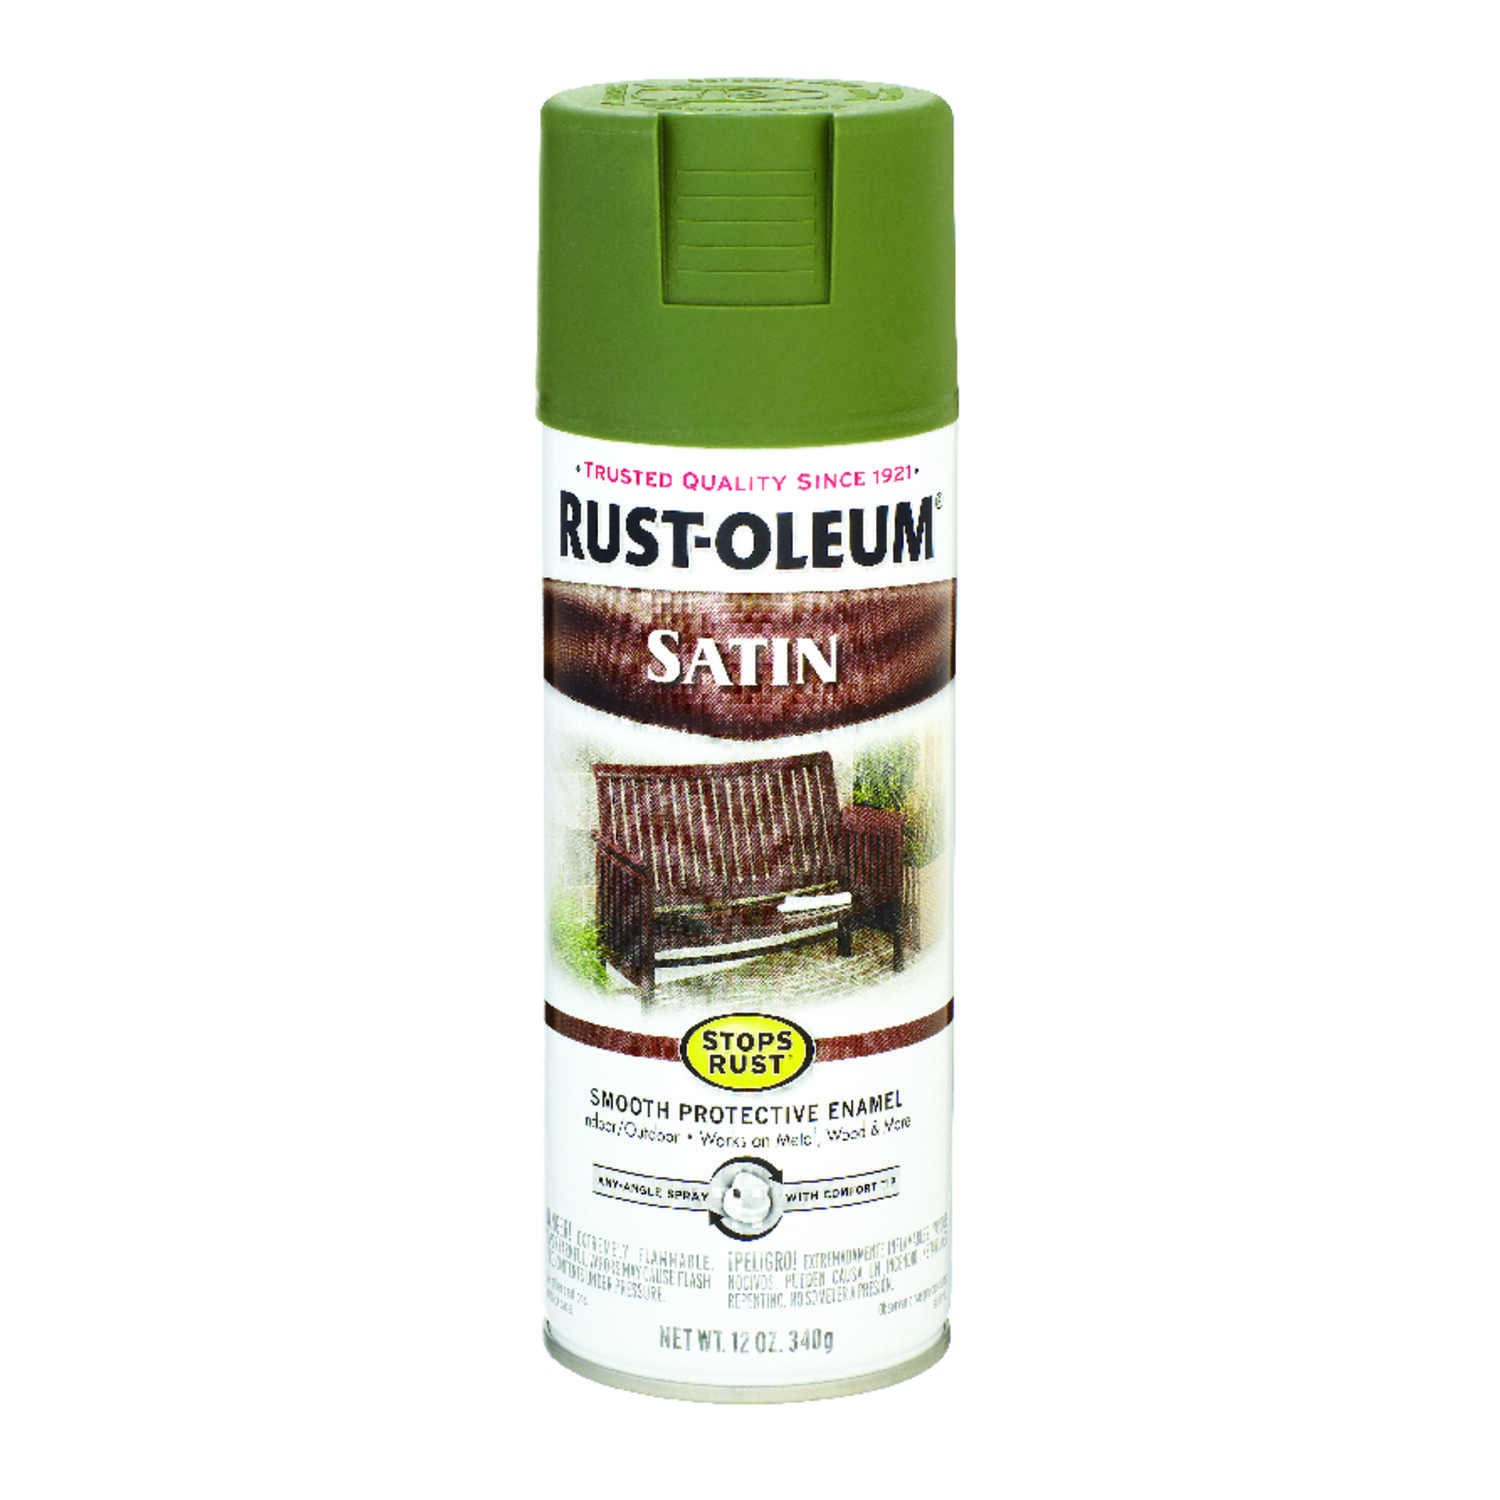 Rust-Oleum  Stops Rust  Satin  Sage  12 oz. Spray Paint